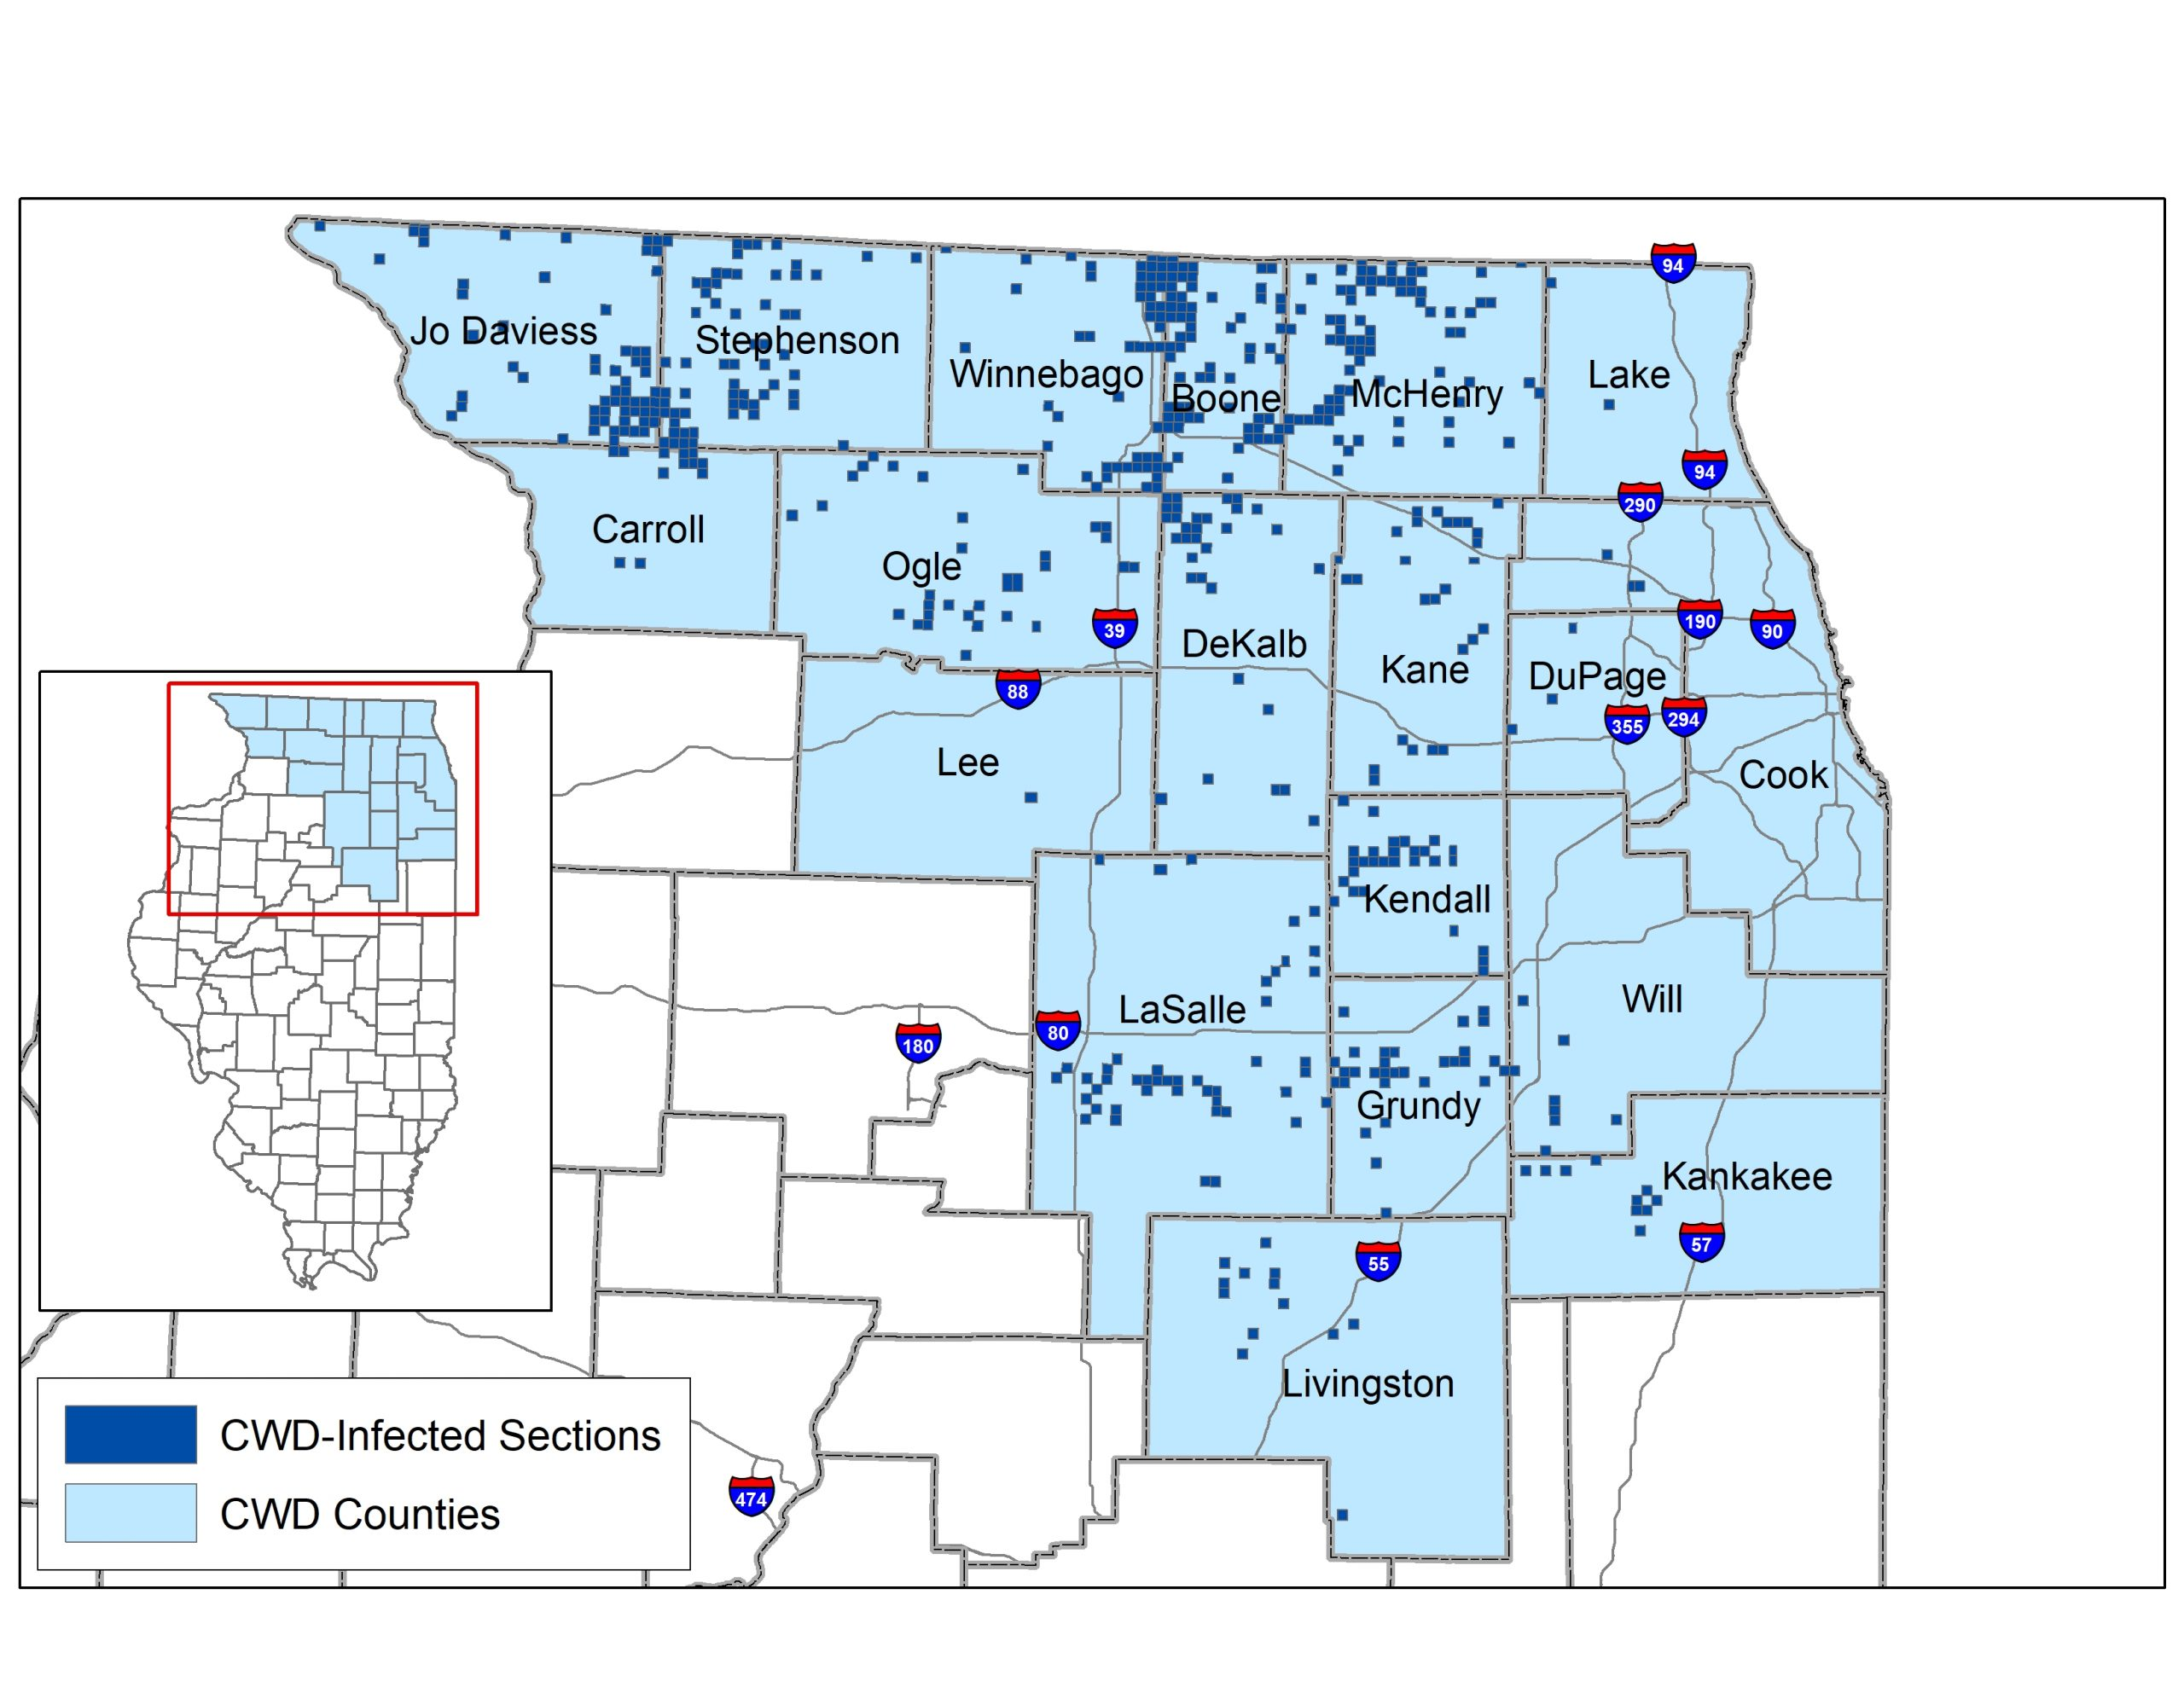 A map of Illinois indicating areas with Chronic Wasting Disease infected deer. Most of the top right of the state has Chronic Wasting Disease areas.